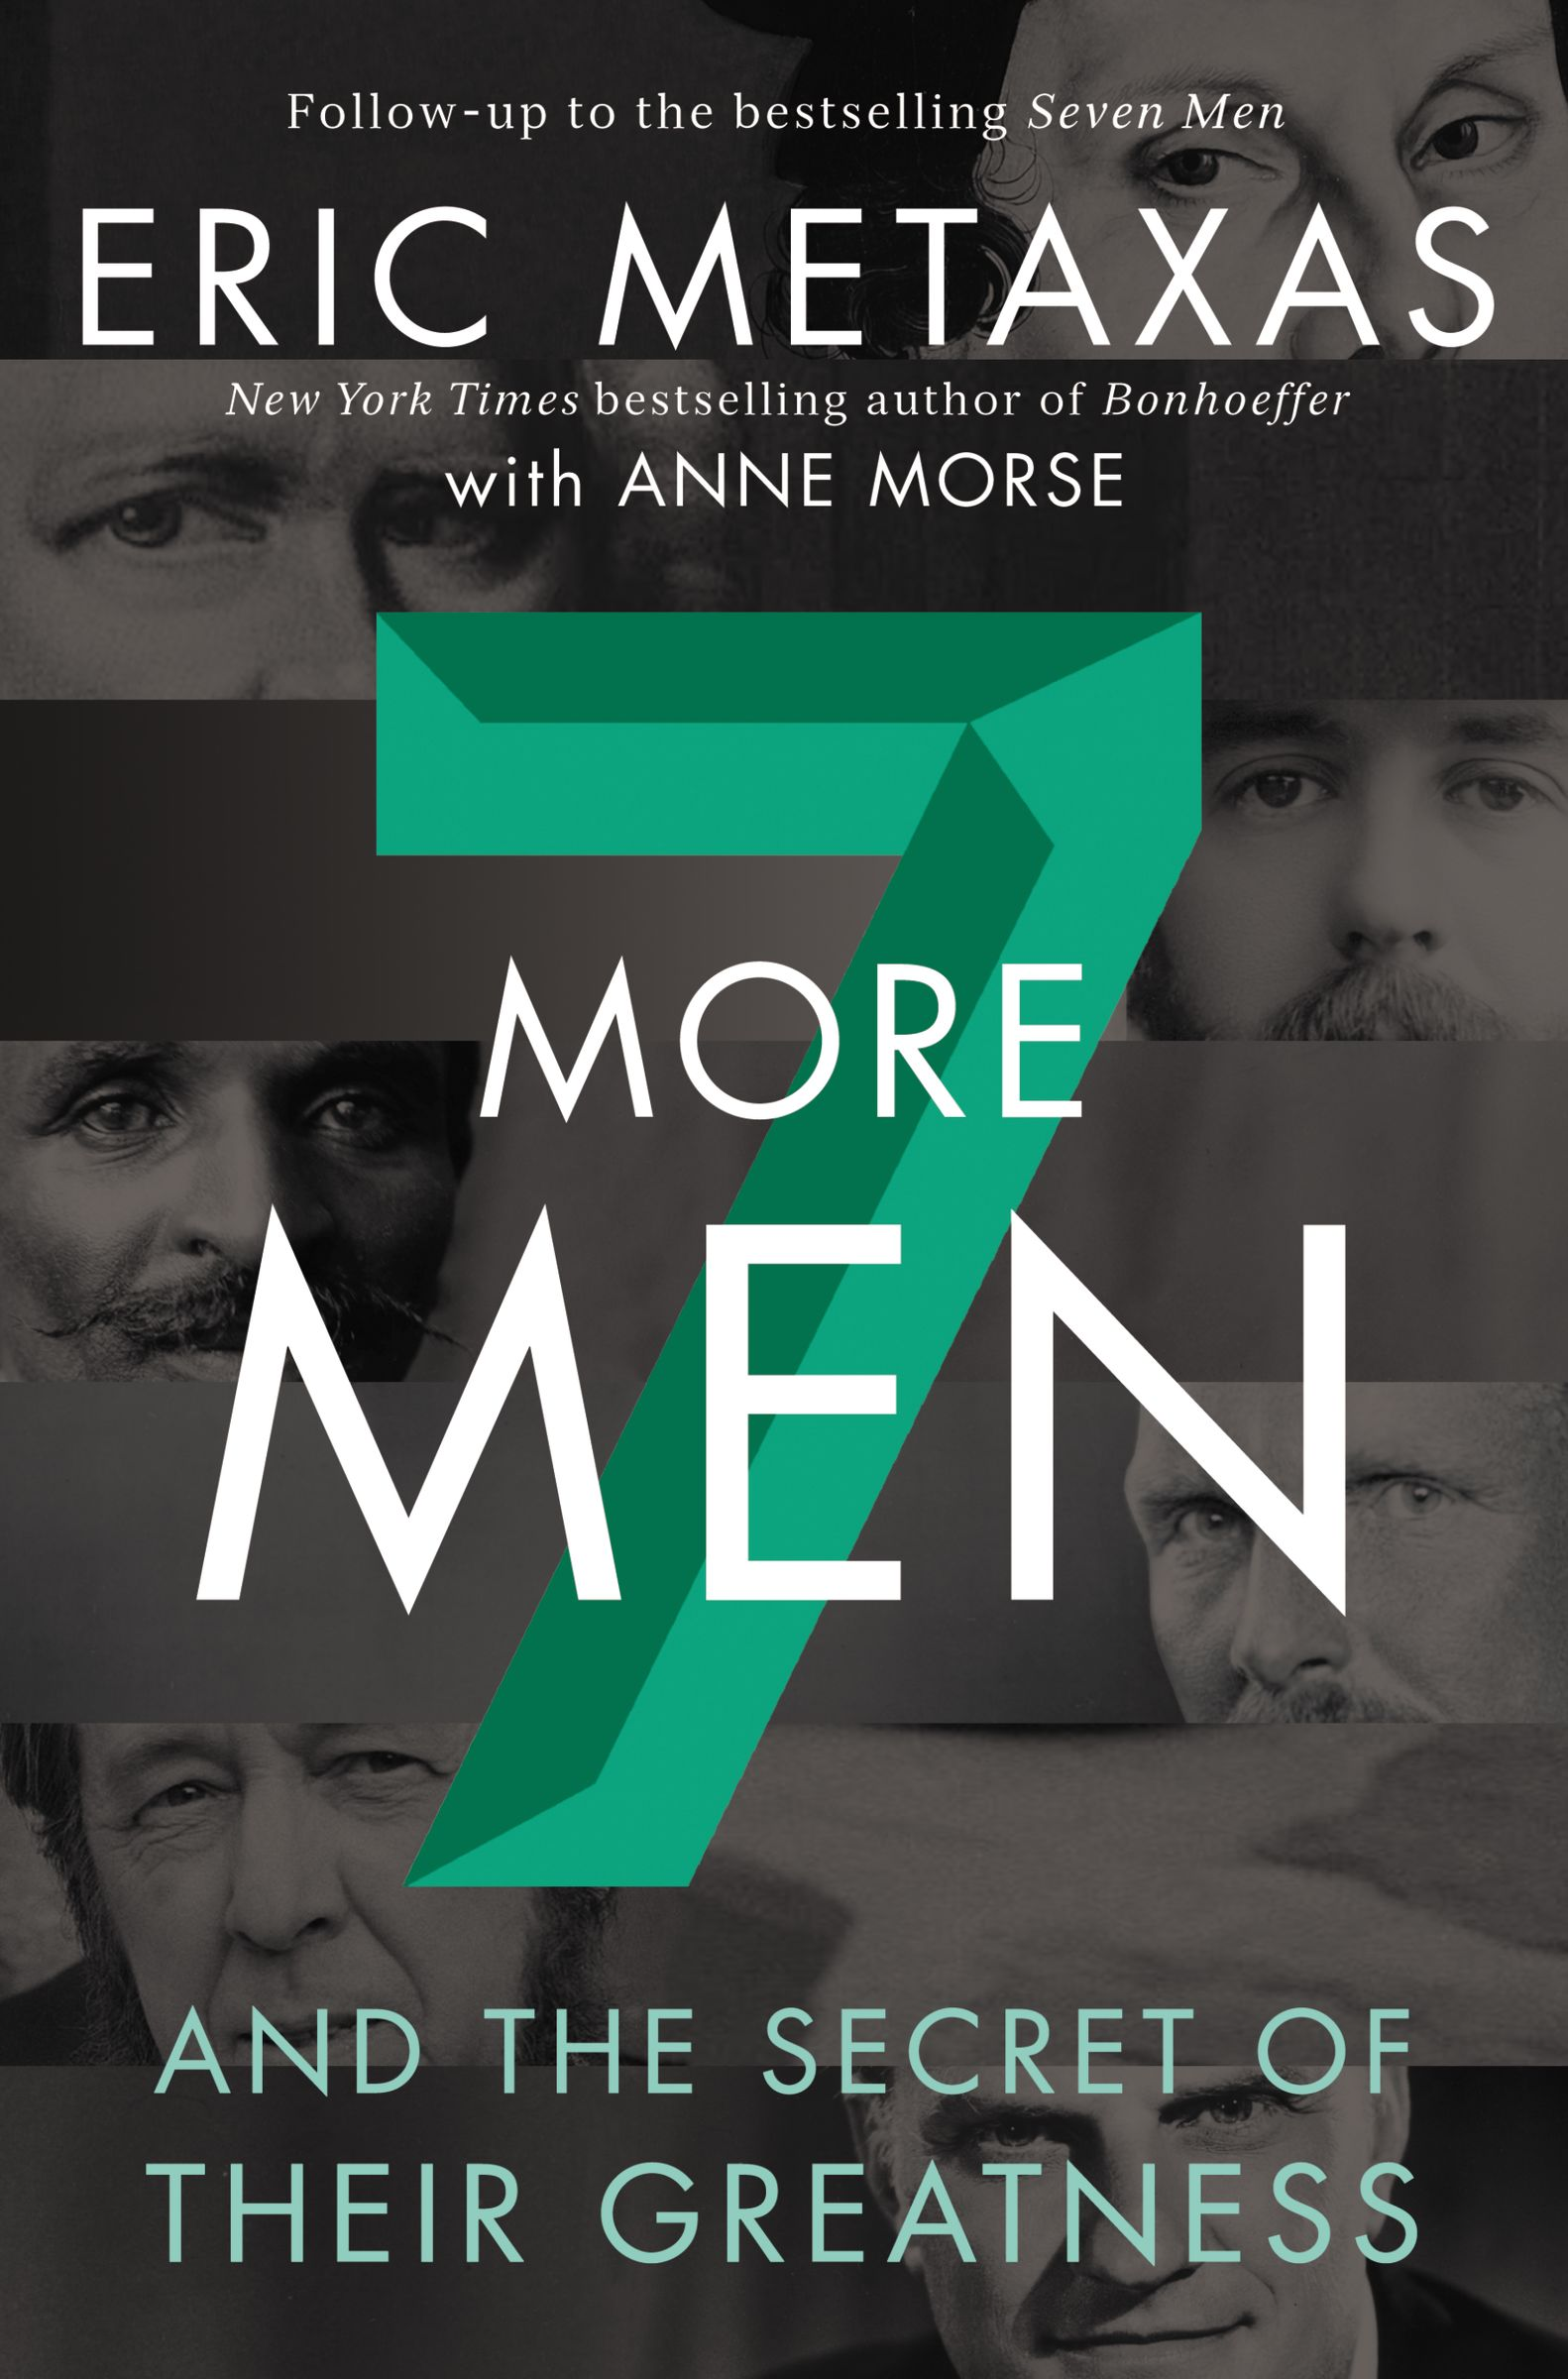 Seven More Men: And the Secret of Their Greatness